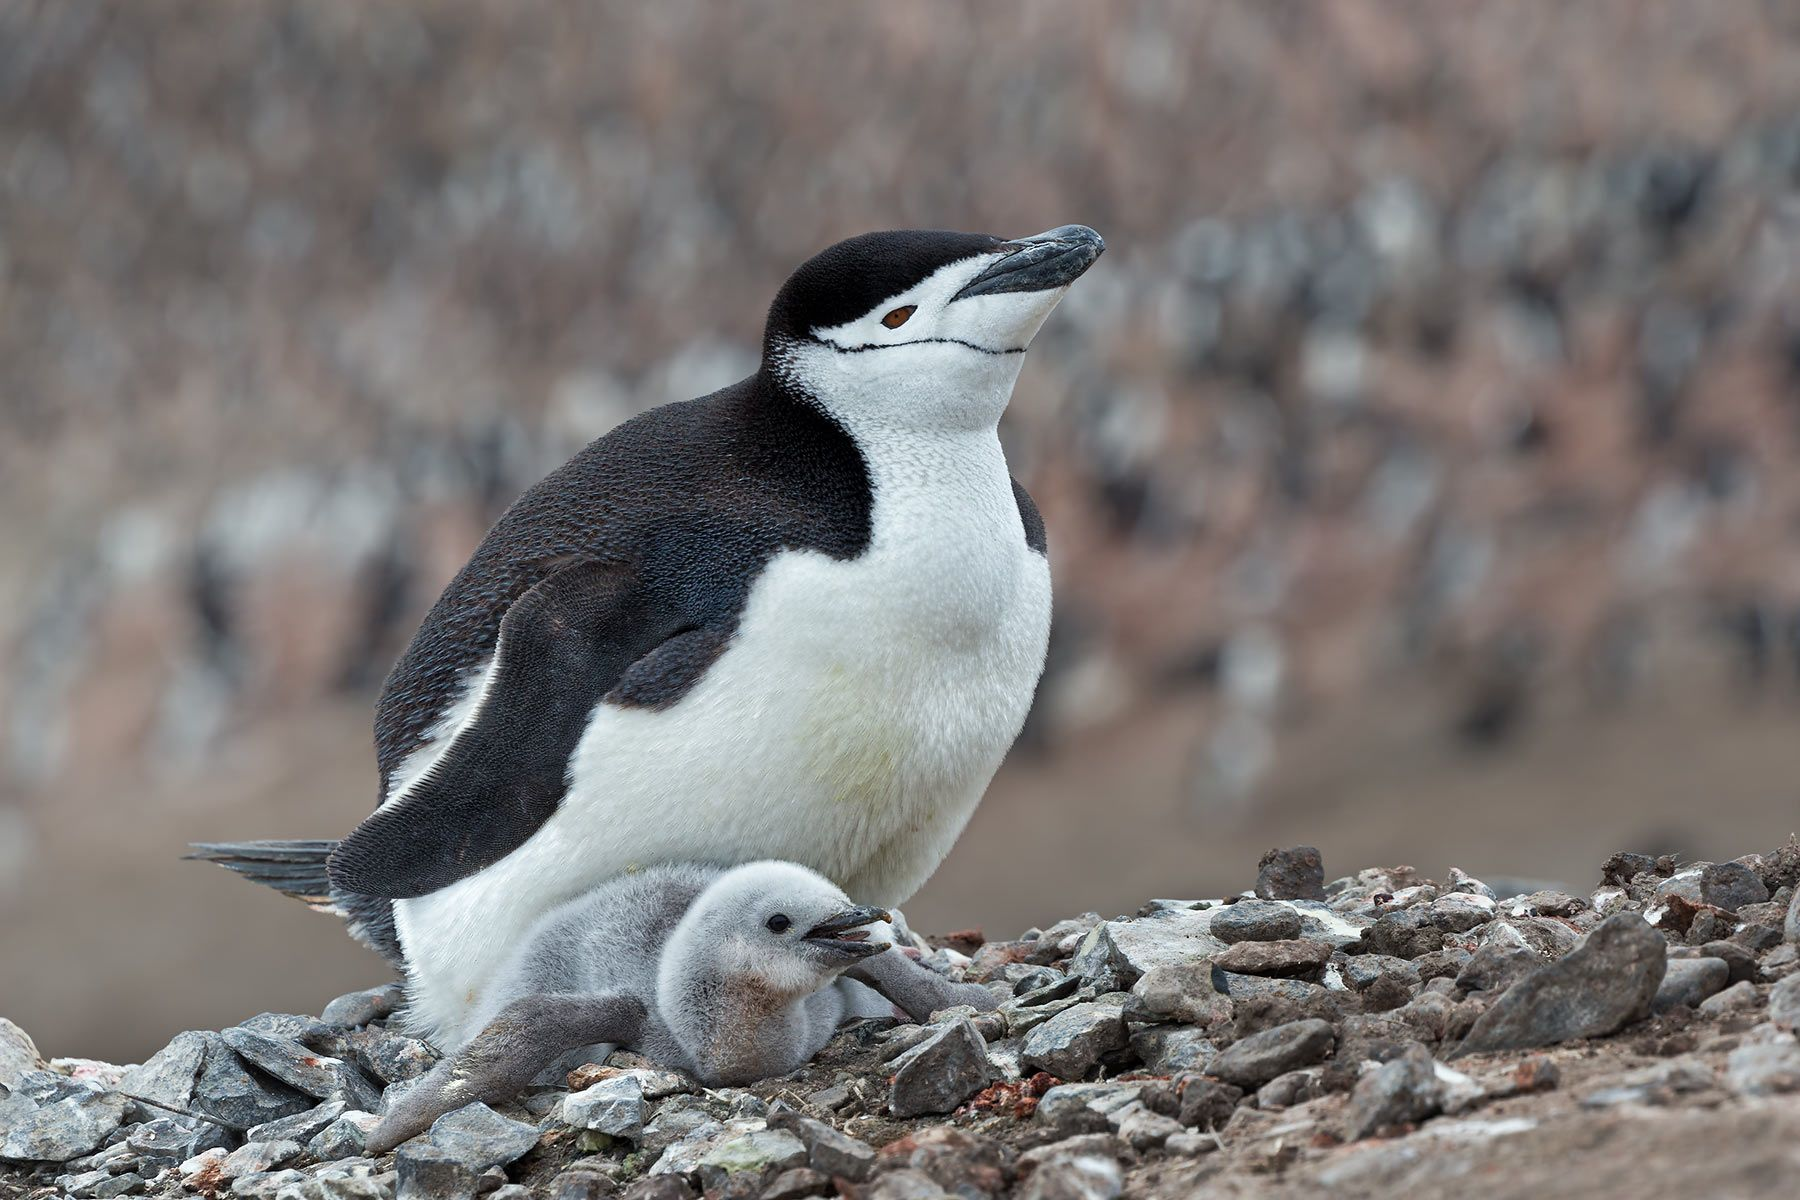 Chinstrap-Penguin-with-chick-on-the-nest-with-colony-bkgd_E7T4031-Bailey-Head,-Deception-Island,-Antarctica.jpg